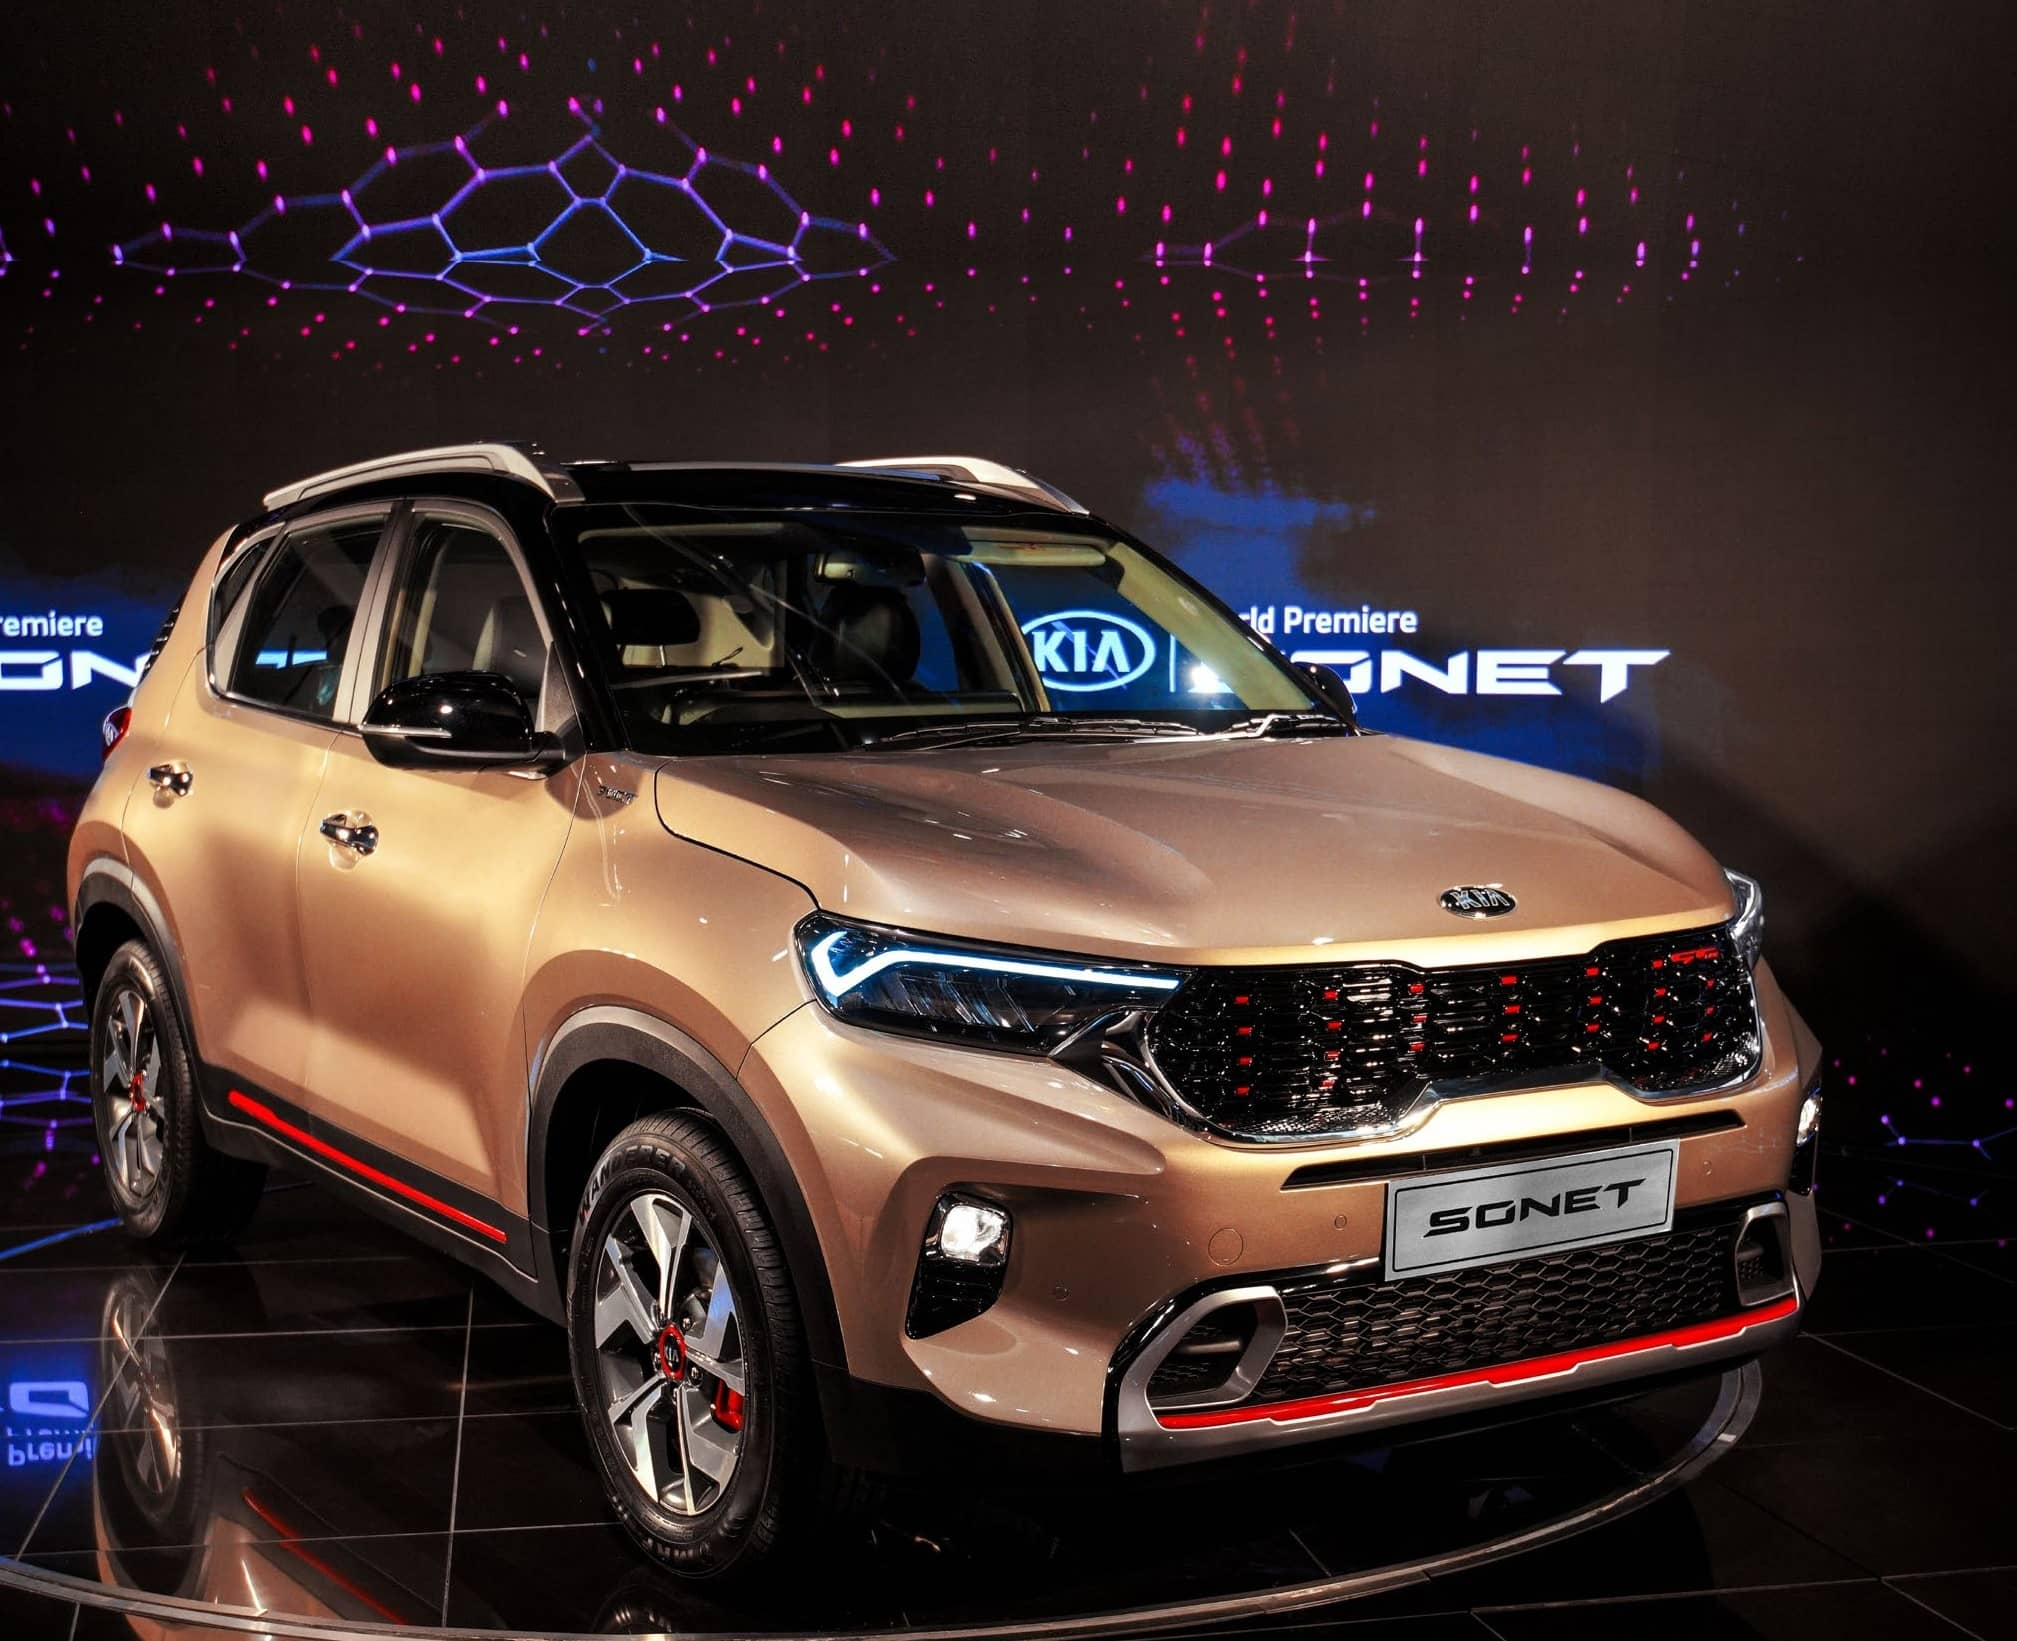 KIA SONET – A MIGHTY OFFERING IN THE COMPACT SUV SEGMENT